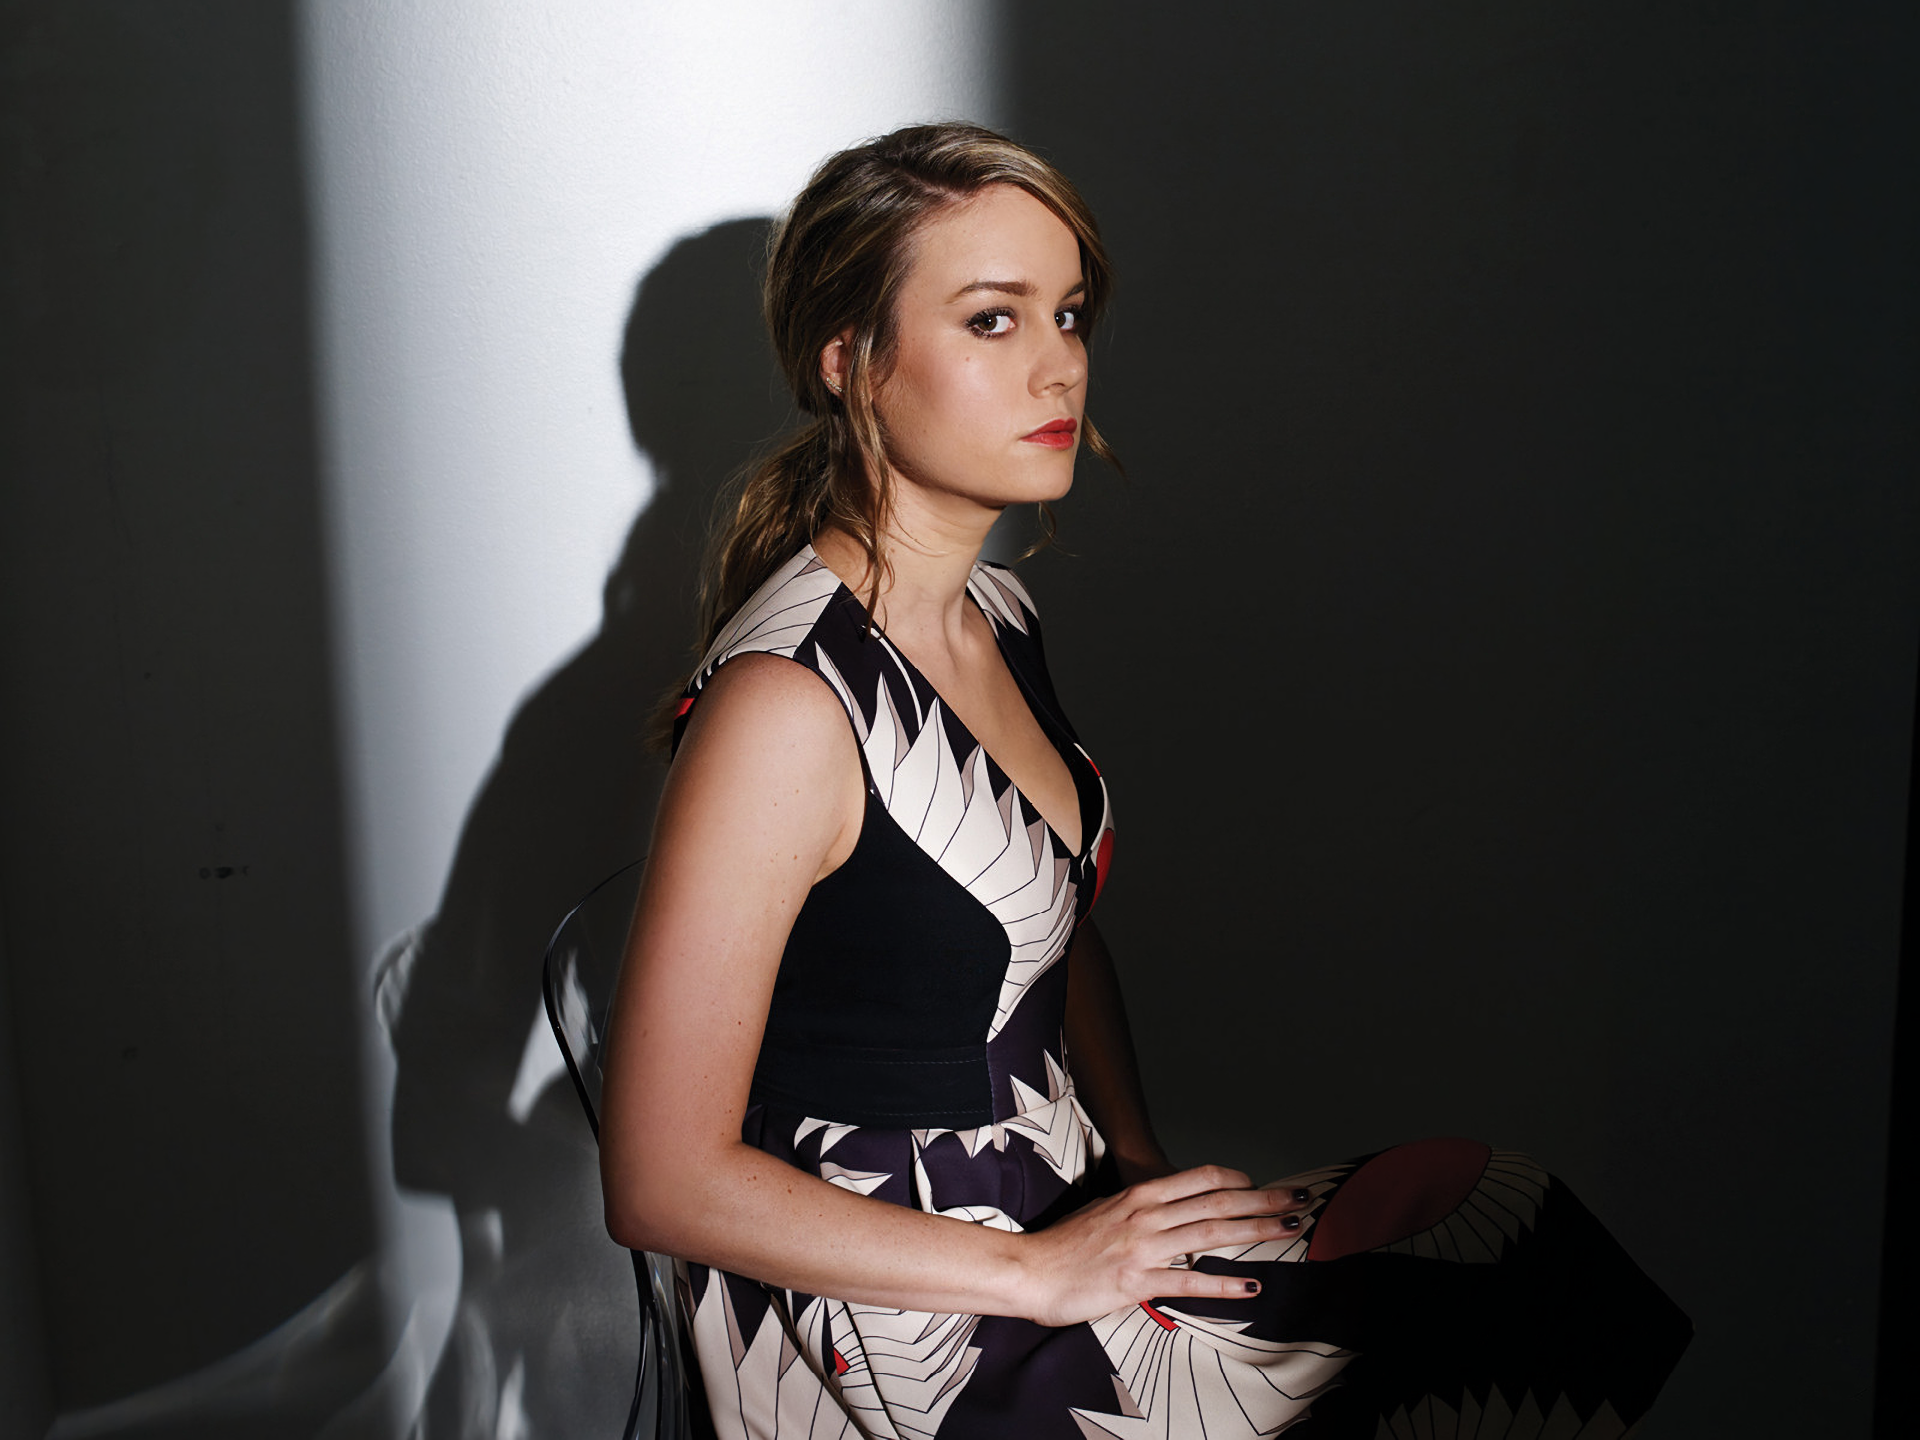 Brie Larson HD Wallpaper Background Image 1920x1440 ID 1920x1440